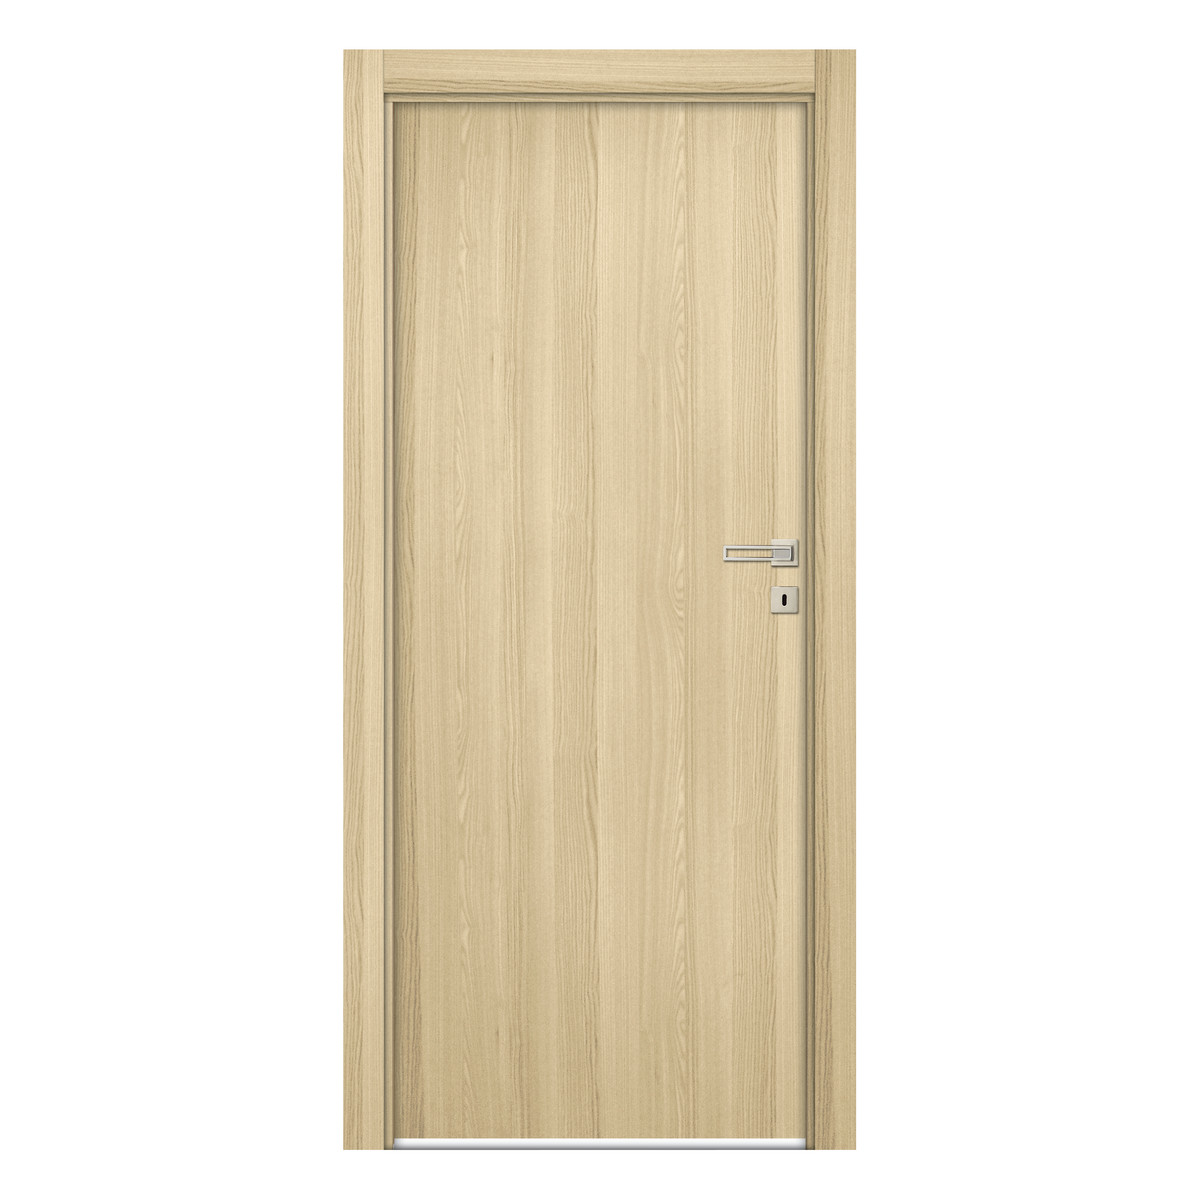 Porta da interno battente young rovere sbiancato 80 x h for Porte interno leroy merlin